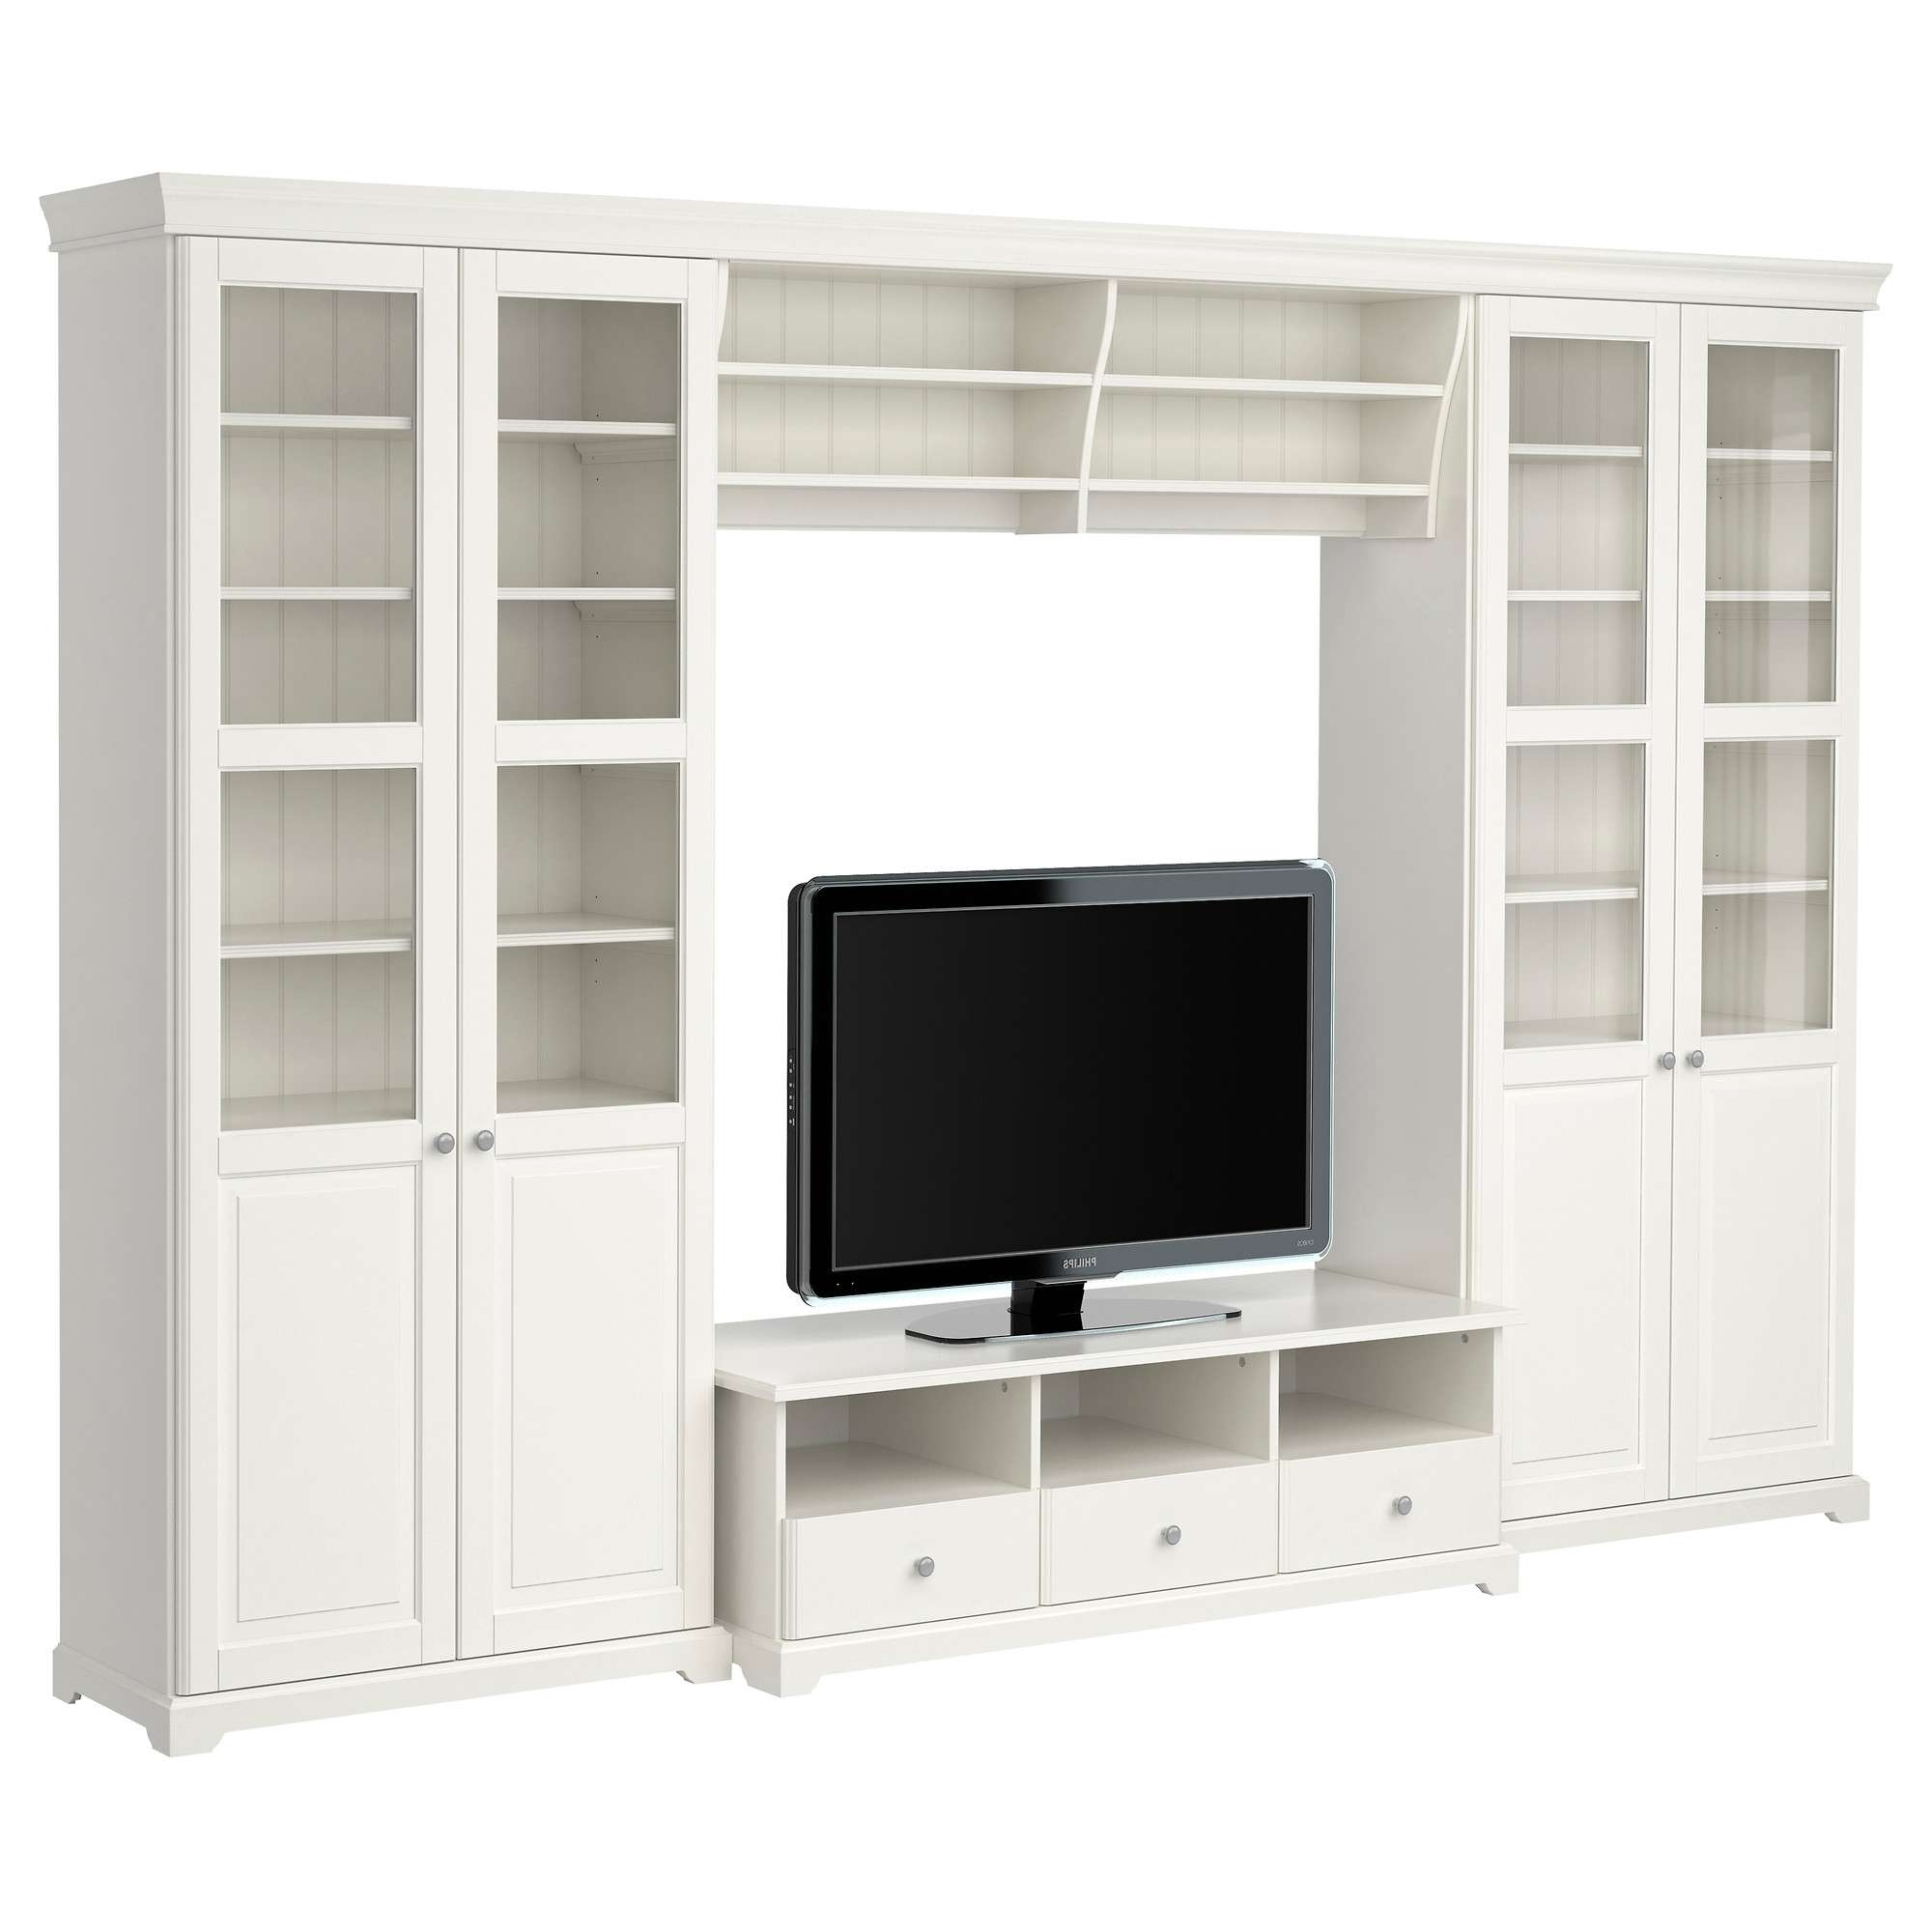 Liatorp Tv Storage Combination White Media Units Stands Ikea Within Tv Stands At Ikea (View 13 of 15)